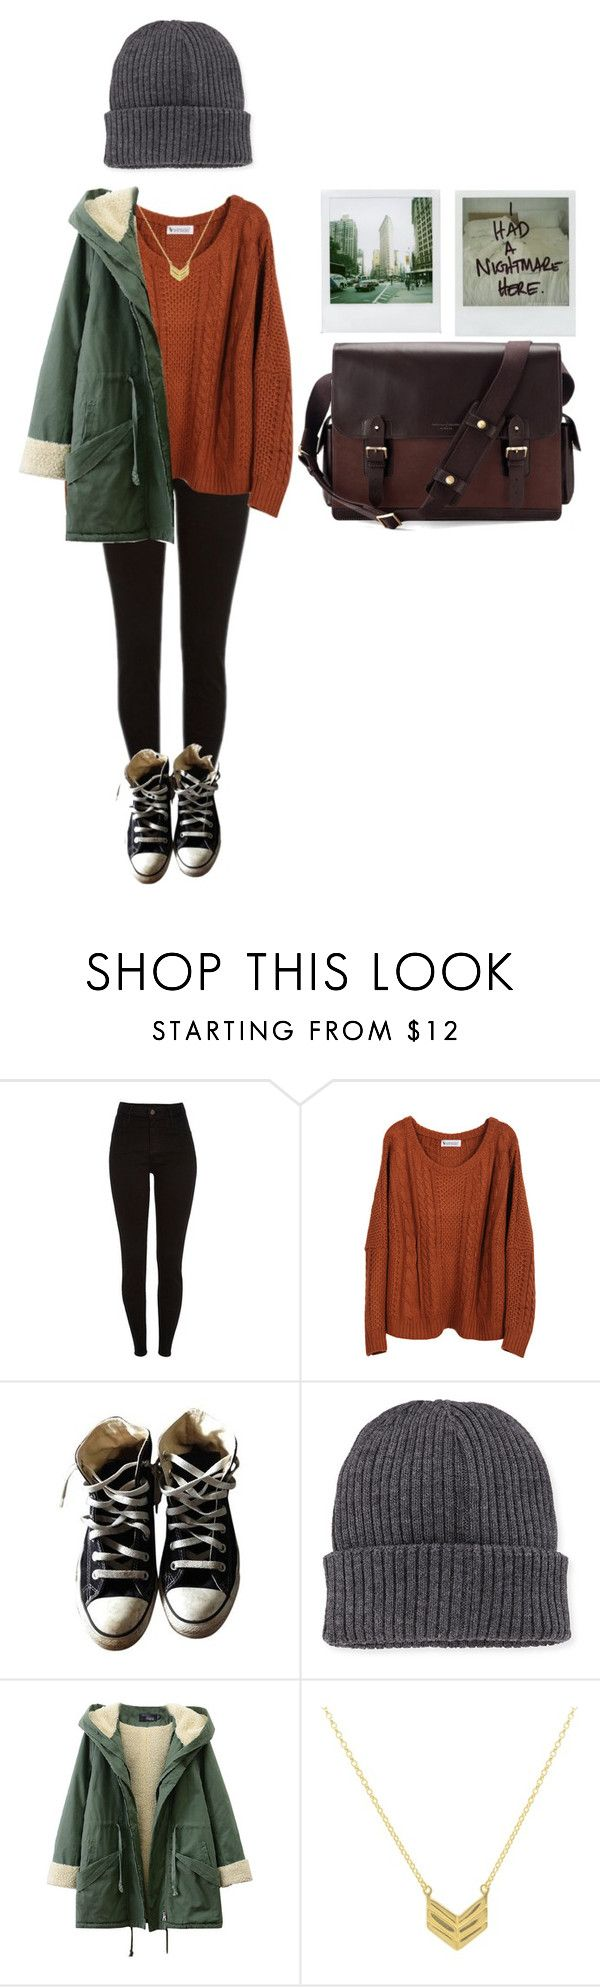 """grunge winter"" by larrytale on Polyvore featuring мода, Converse, Polaroid, Moncler и Aspinal of London"